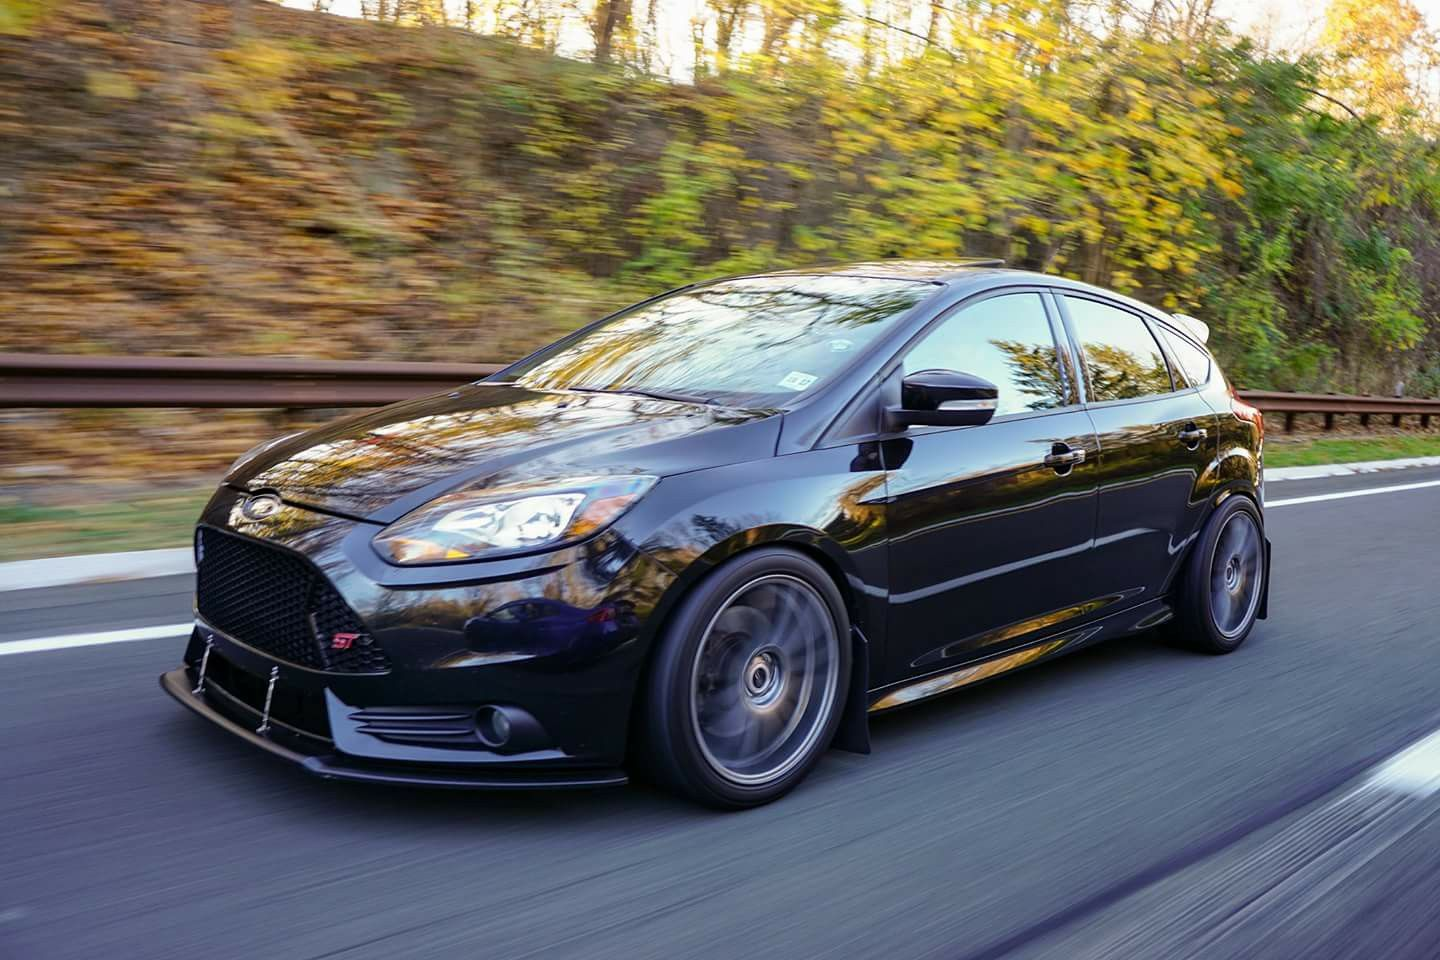 Heads Up Cj Customer Dave D Is Headed Your Way In His Sick Focus